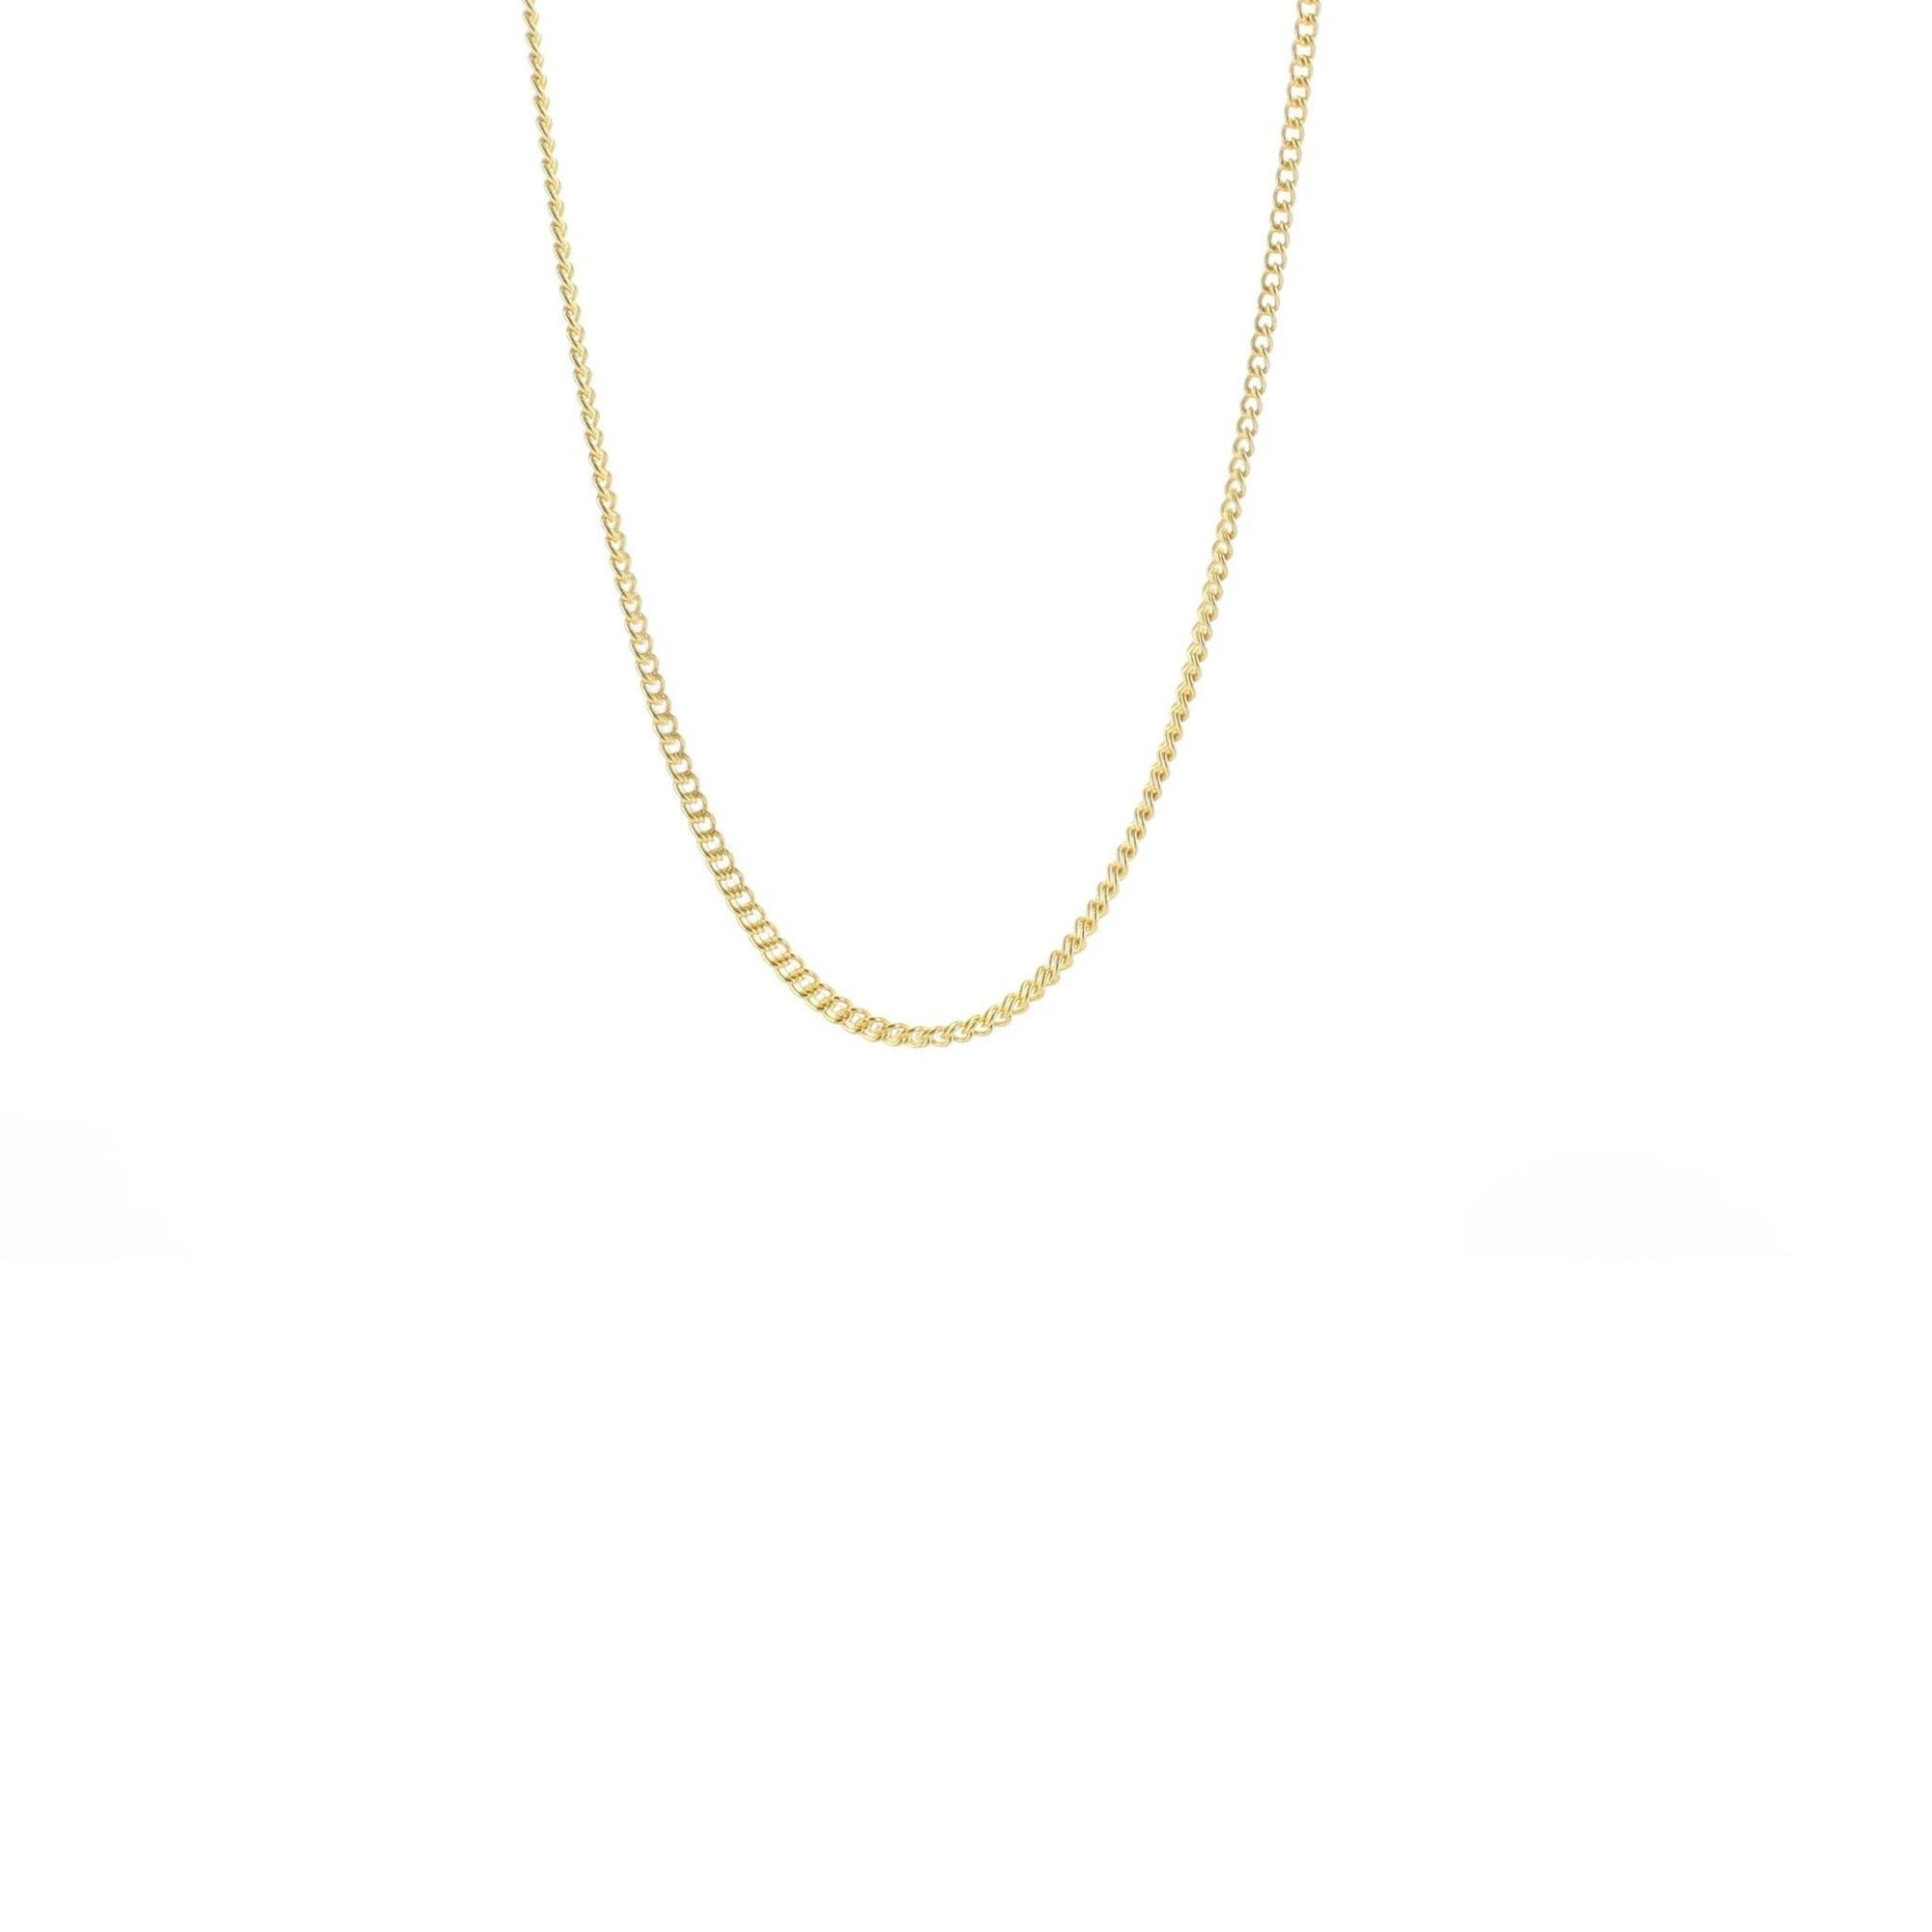 "CHARMING 14-17"" SHORT NECKLACE GOLD - SO PRETTY CARA COTTER"